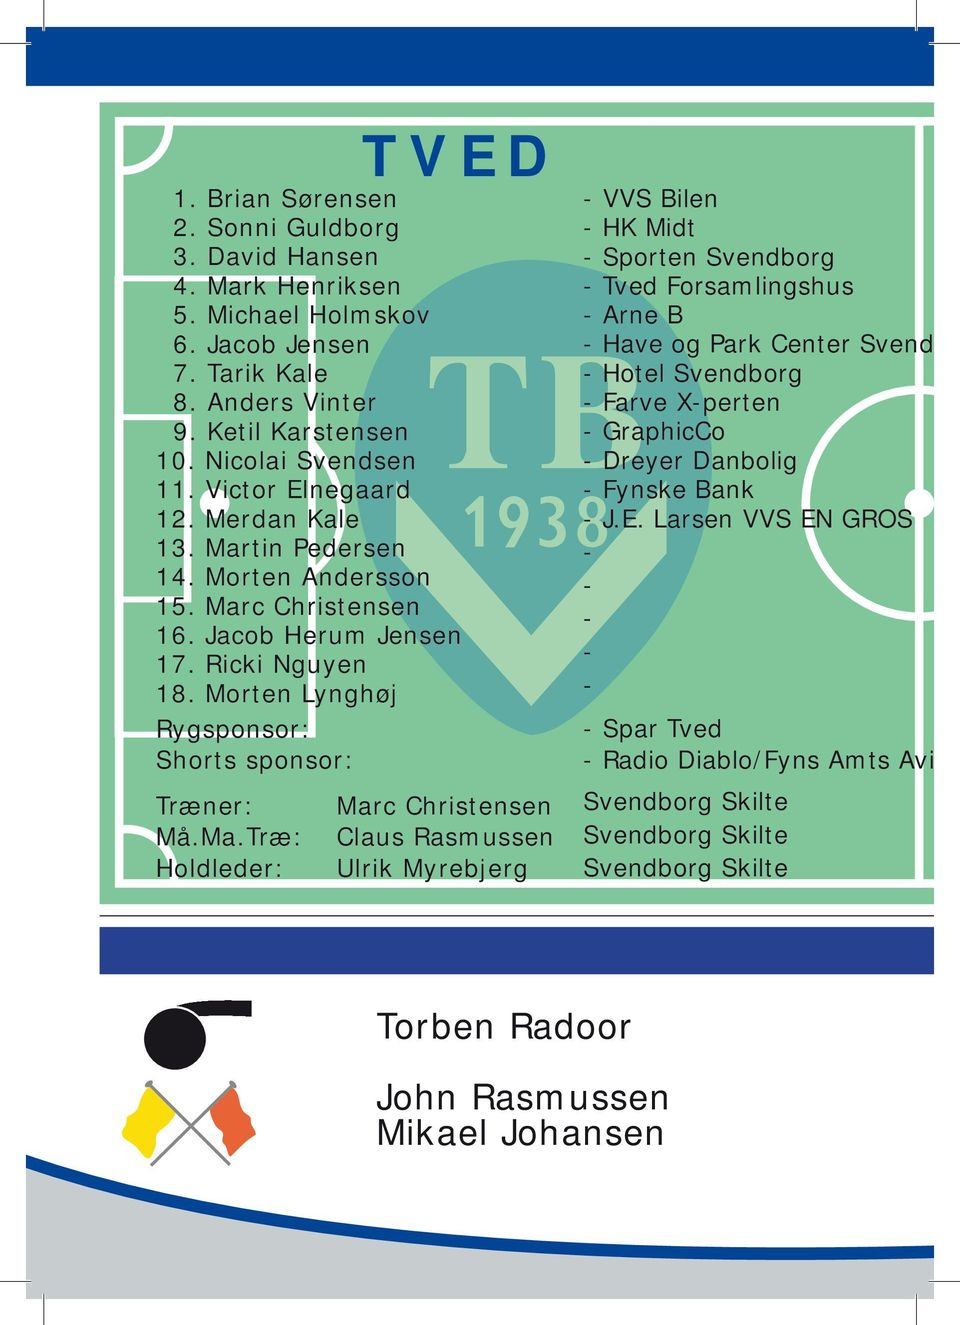 tin Pedersen 14. Morten Andersson 15. Mar